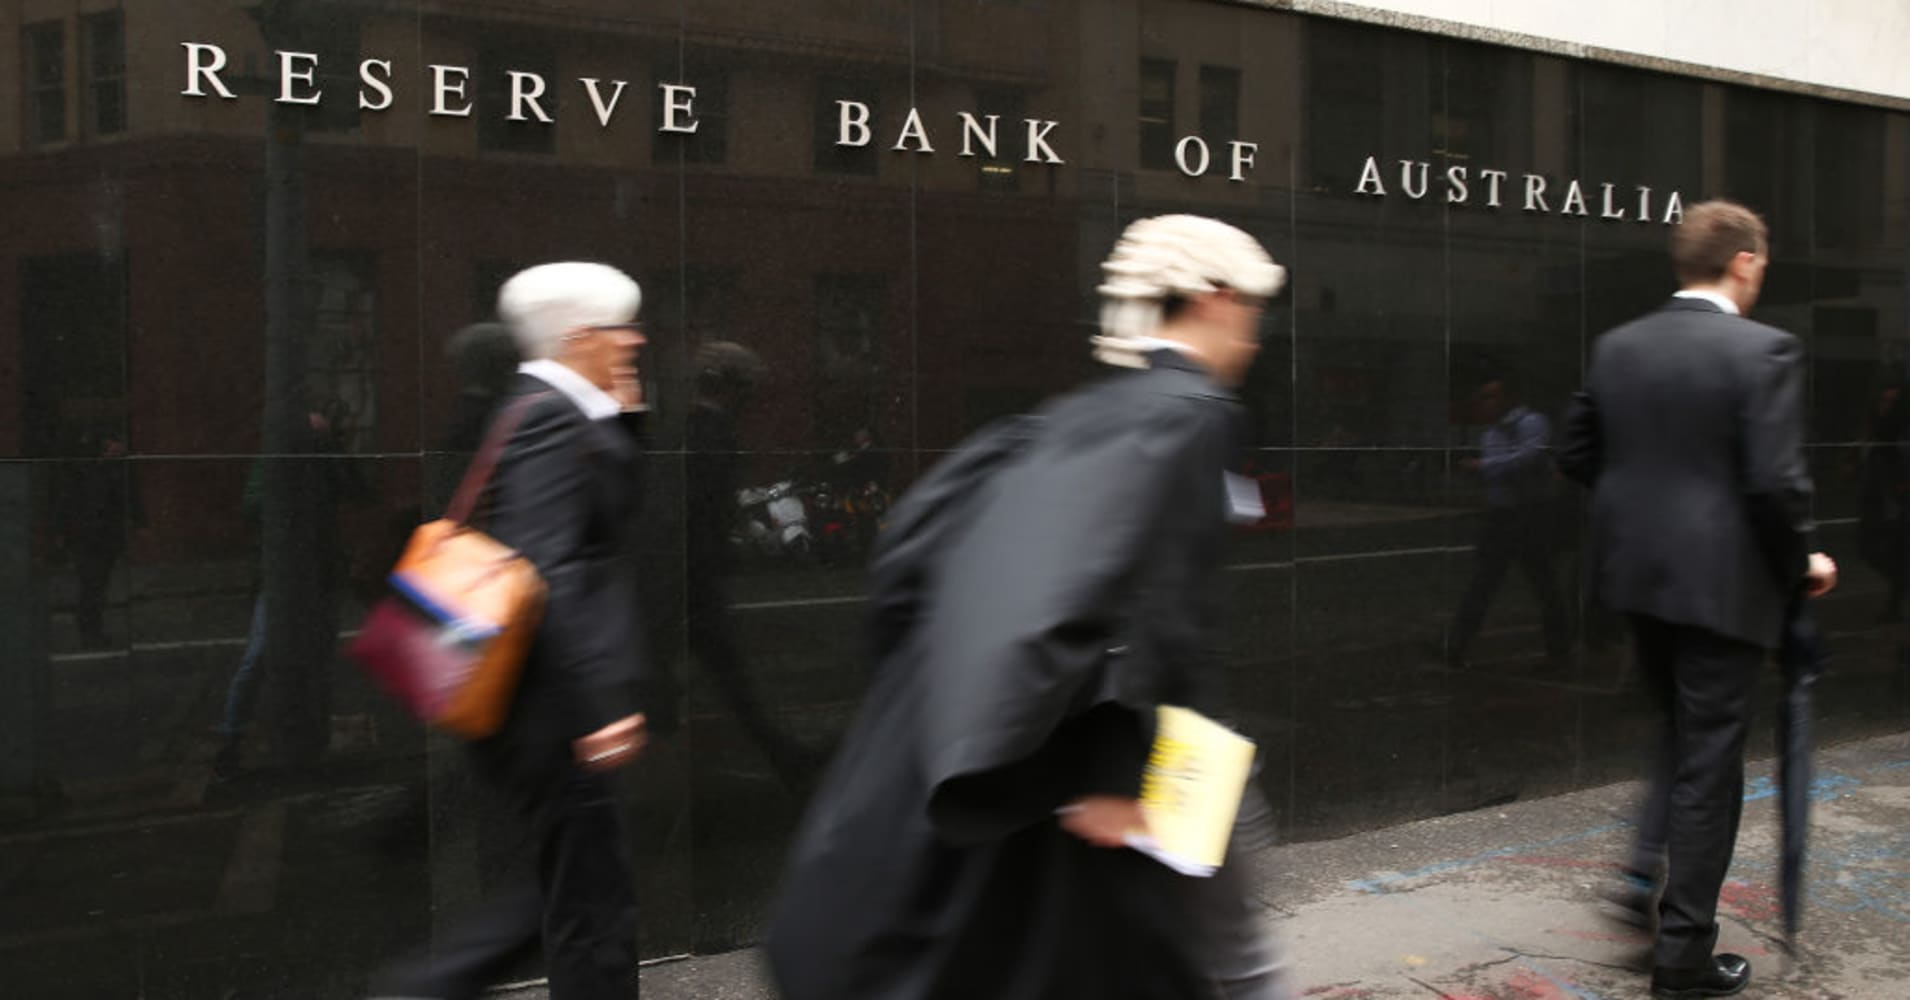 Australia's central bank a 'source of stability' amid political turmoil